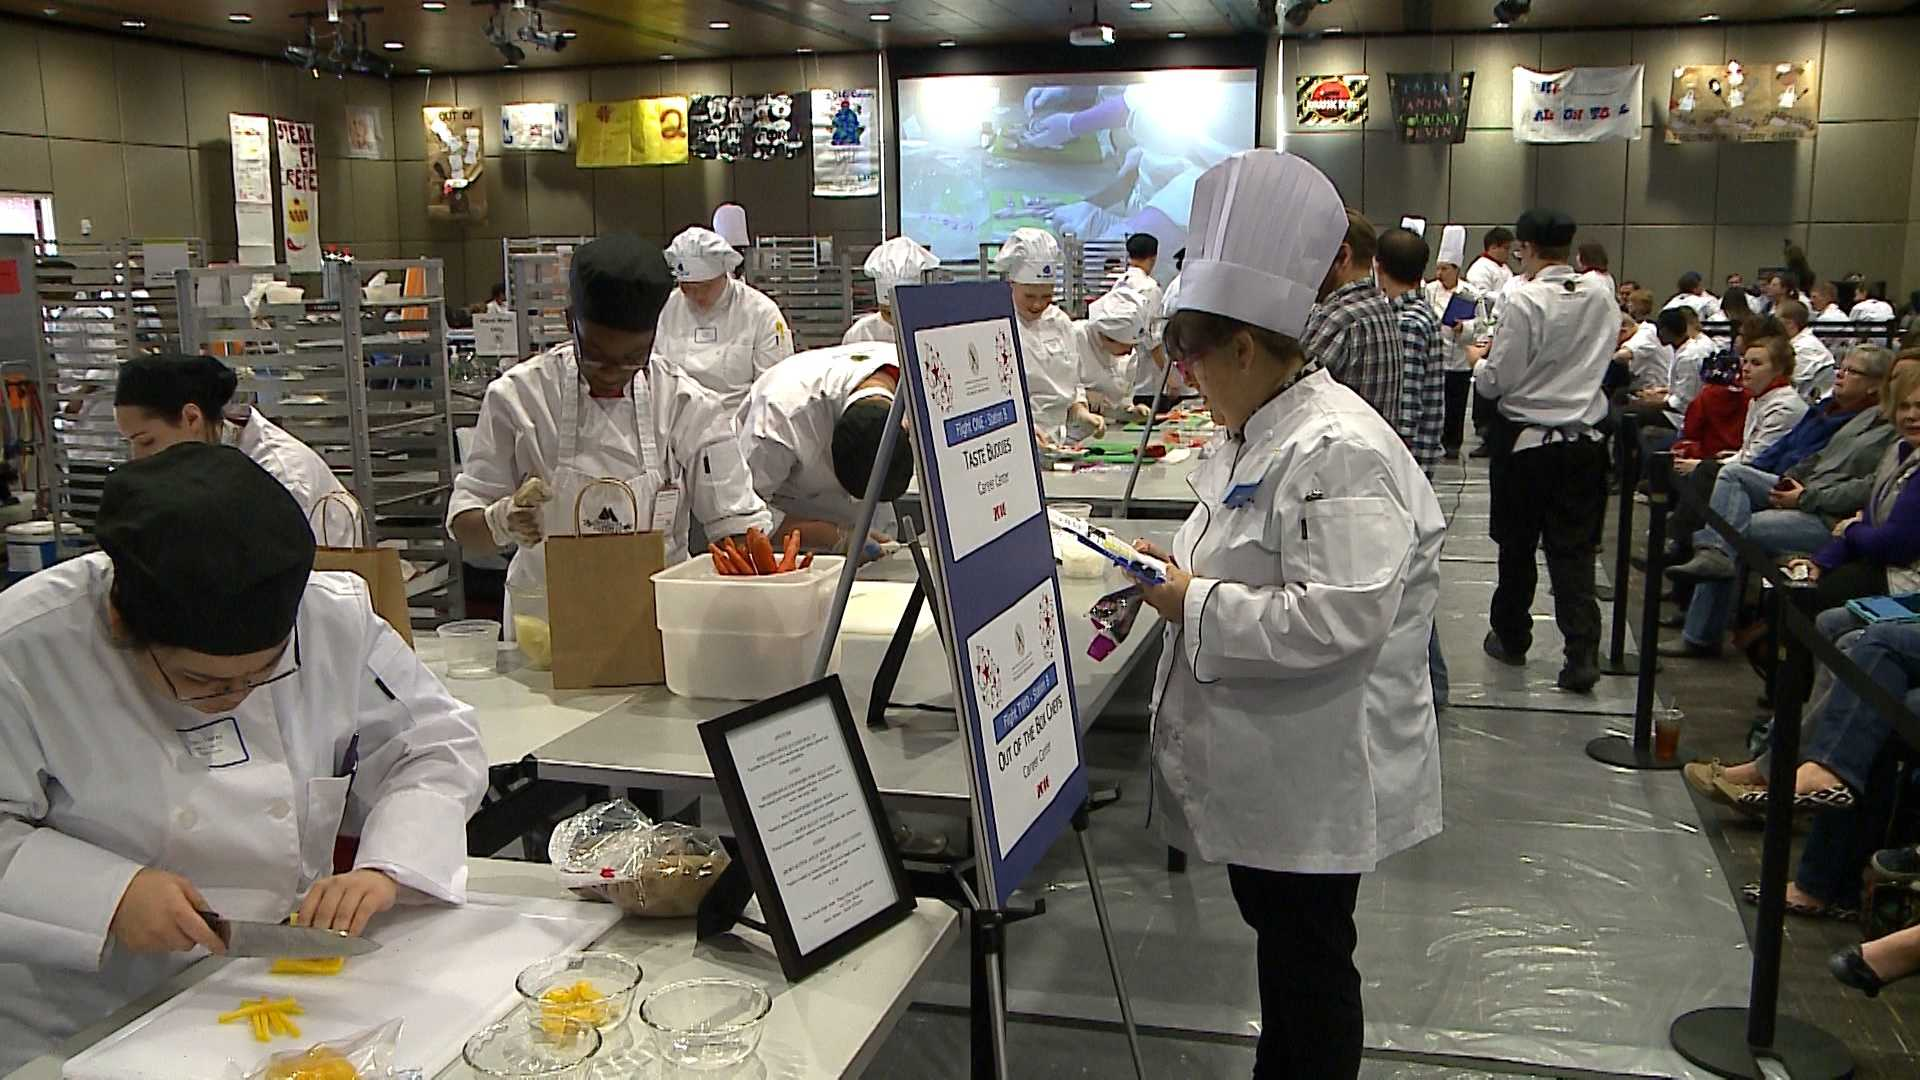 More than 90 high school students from Nebraska and Iowa showed off their cooking skills in the 11th annual High School Culinary Invitational on Friday.